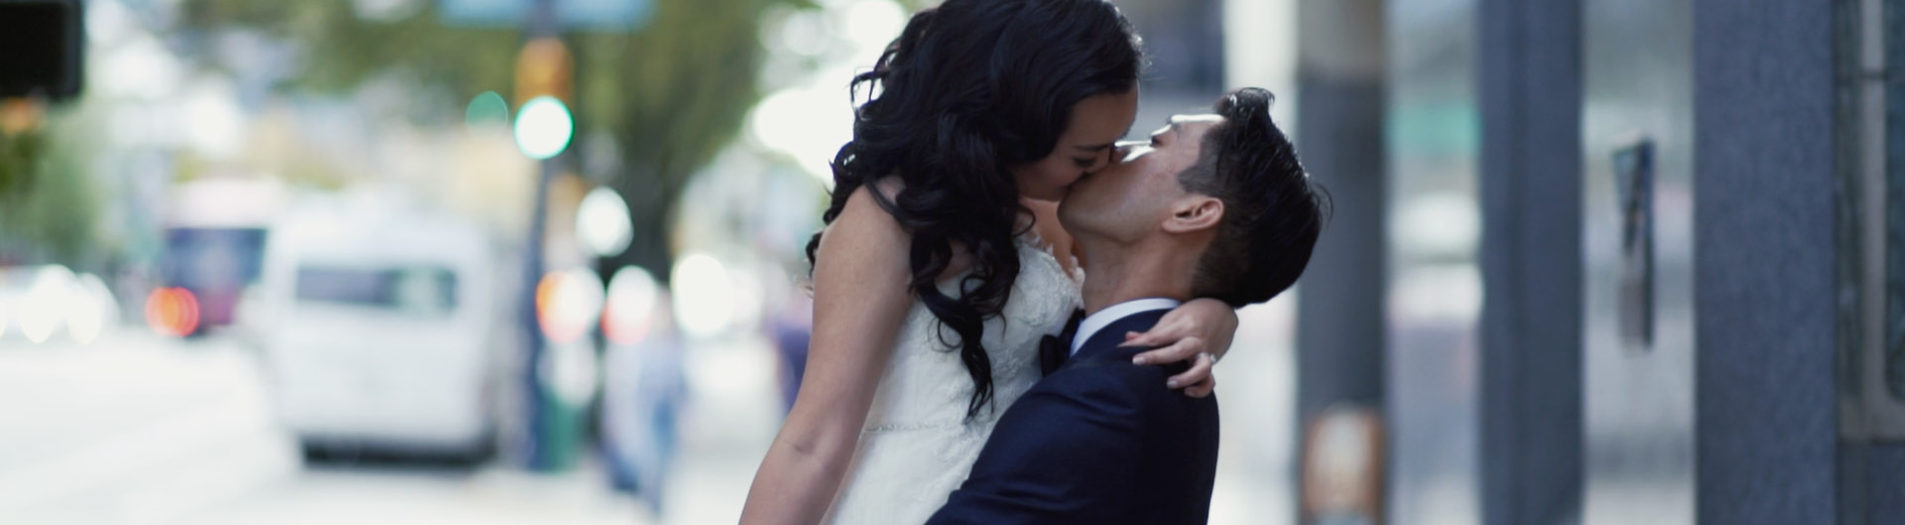 Leslie + Nick | Wedding Highlight Film | The Vancouver Club, Vancouver BC